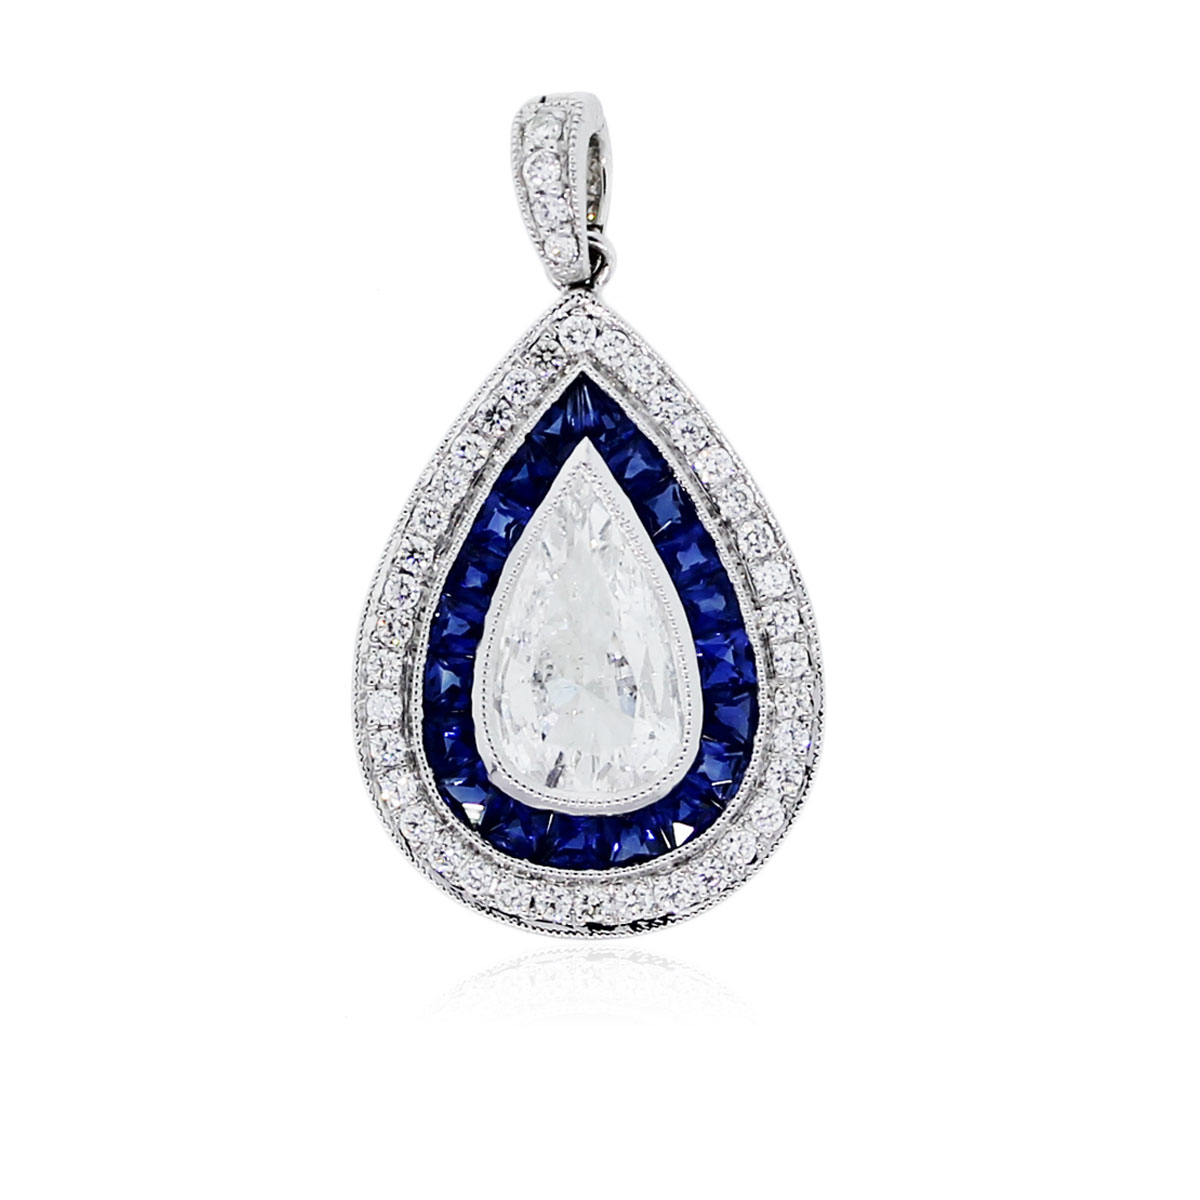 You are viewing this 1.32 Carat Pear Shape Diamond and Sapphire Pendant in Platinum!